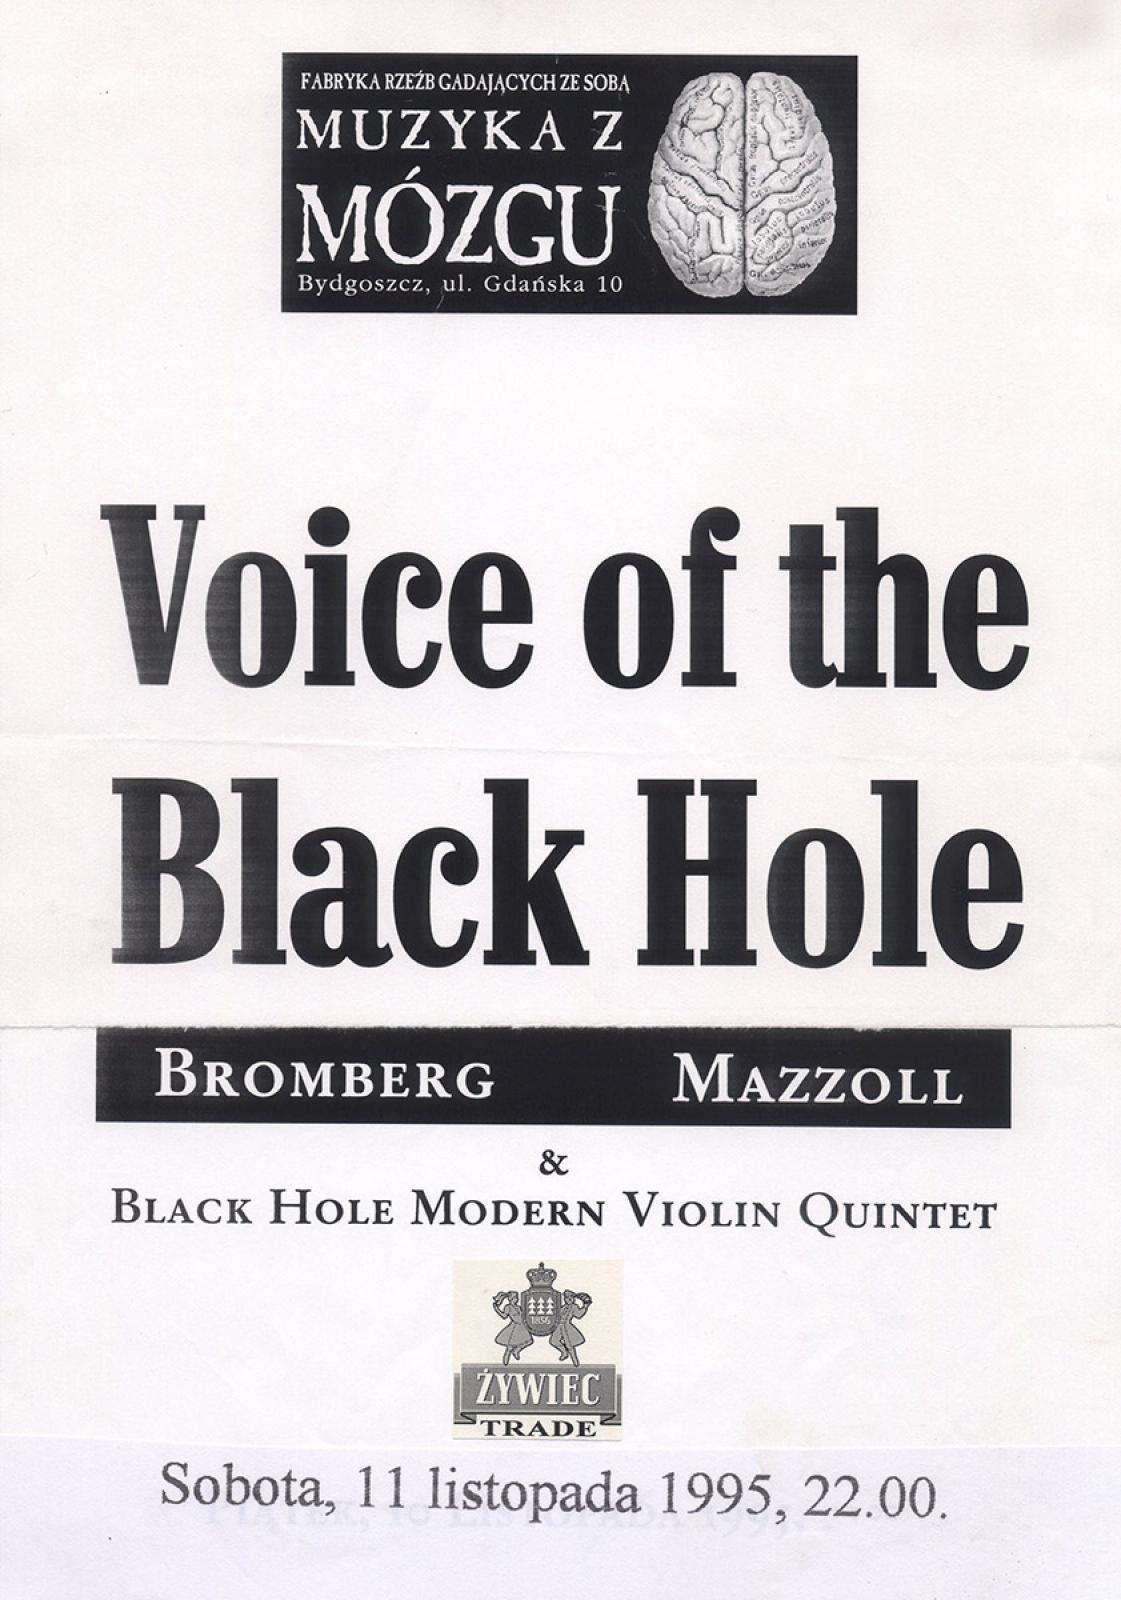 Voice of the Black Hole: Bromberg & Mazzoll + Black Hole Modern String Quintet